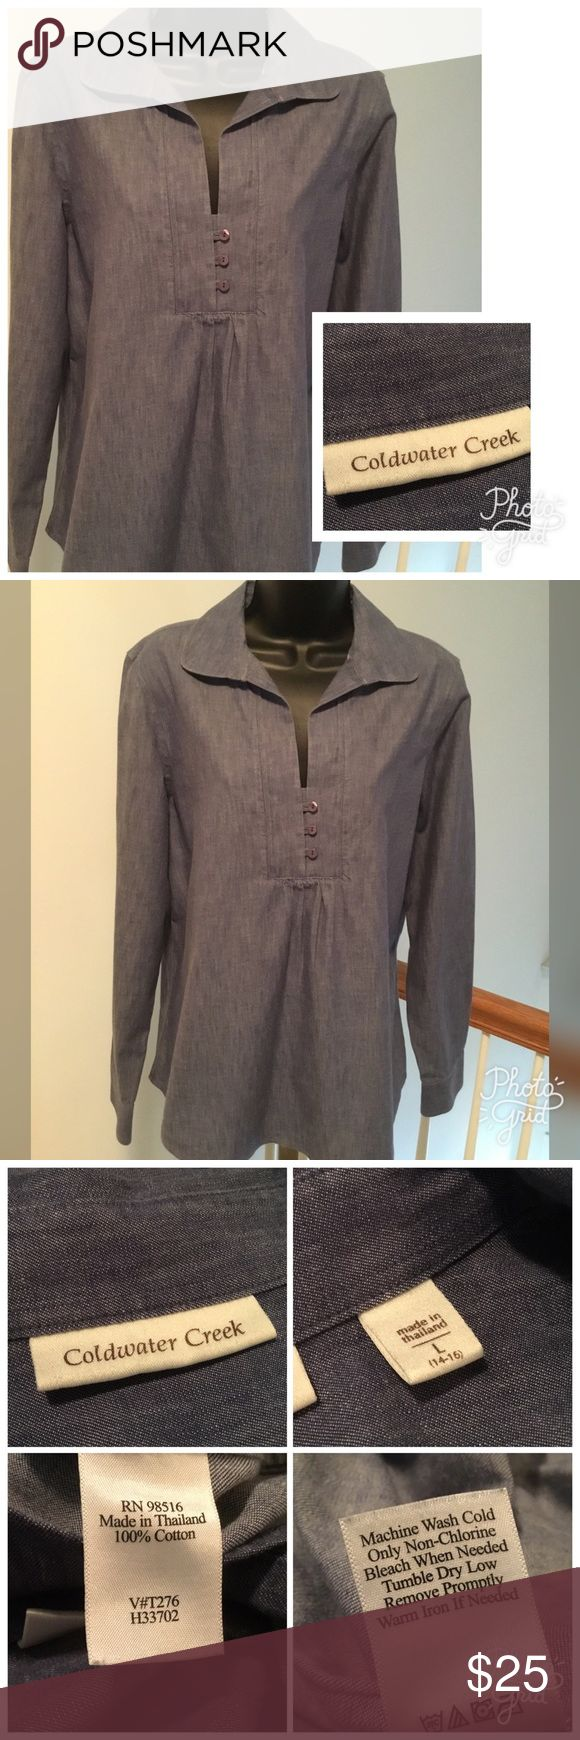 "Coldwater Creek Top Coldwater creek denim long sleeve top. Excellent condition. Measures 22""across and 26"" long. Size 14-16 Coldwater Creek Tops"